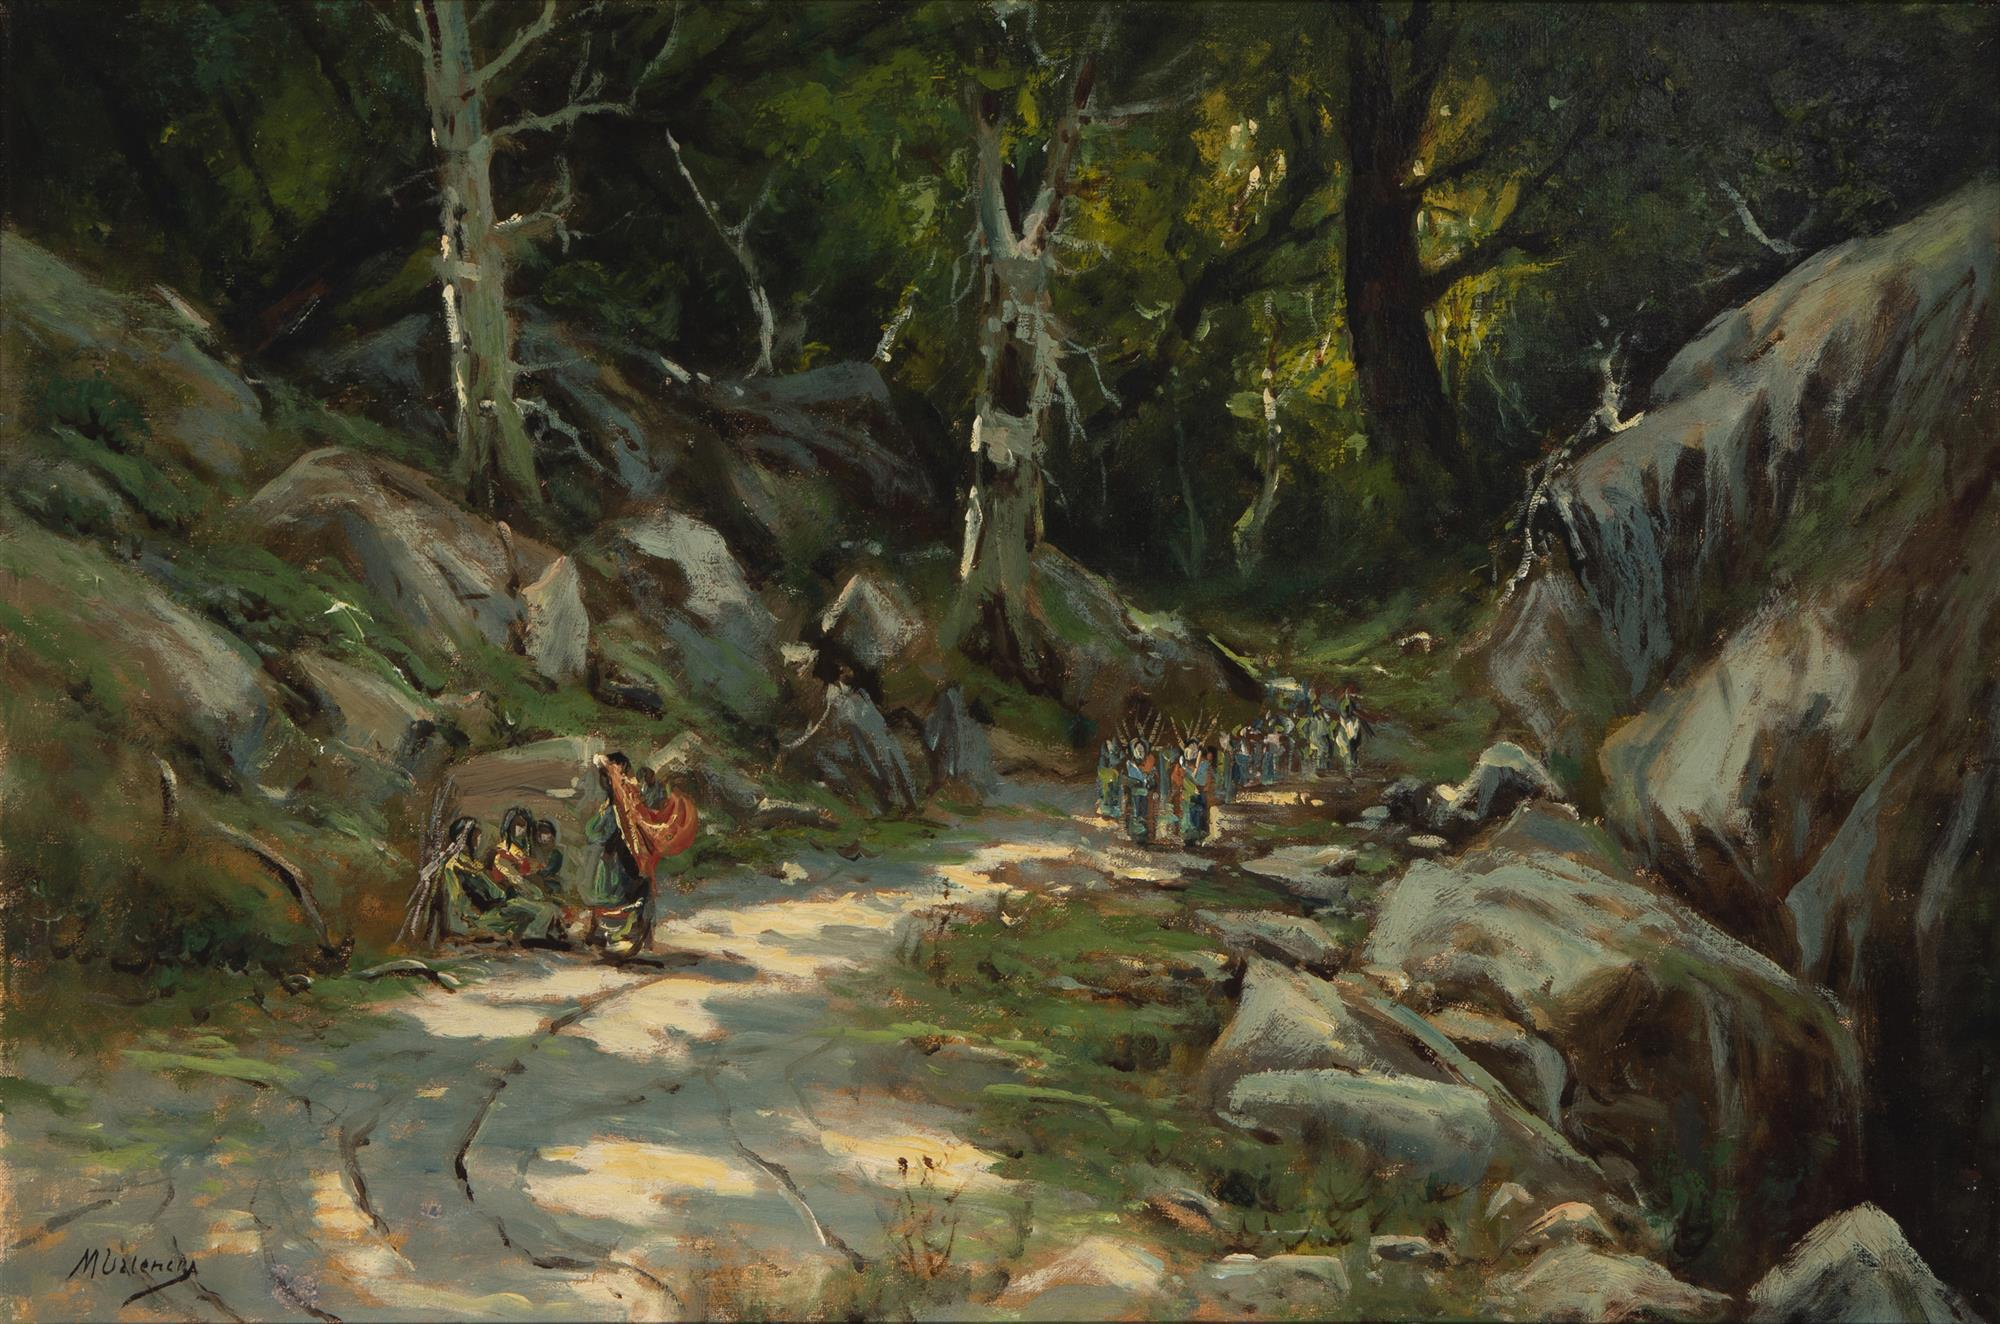 "Manuel Valencia, (1865-1935, Sacramento, CA), Indians on a wooded path, Oil on canvas, 20"" H x 30"" W"